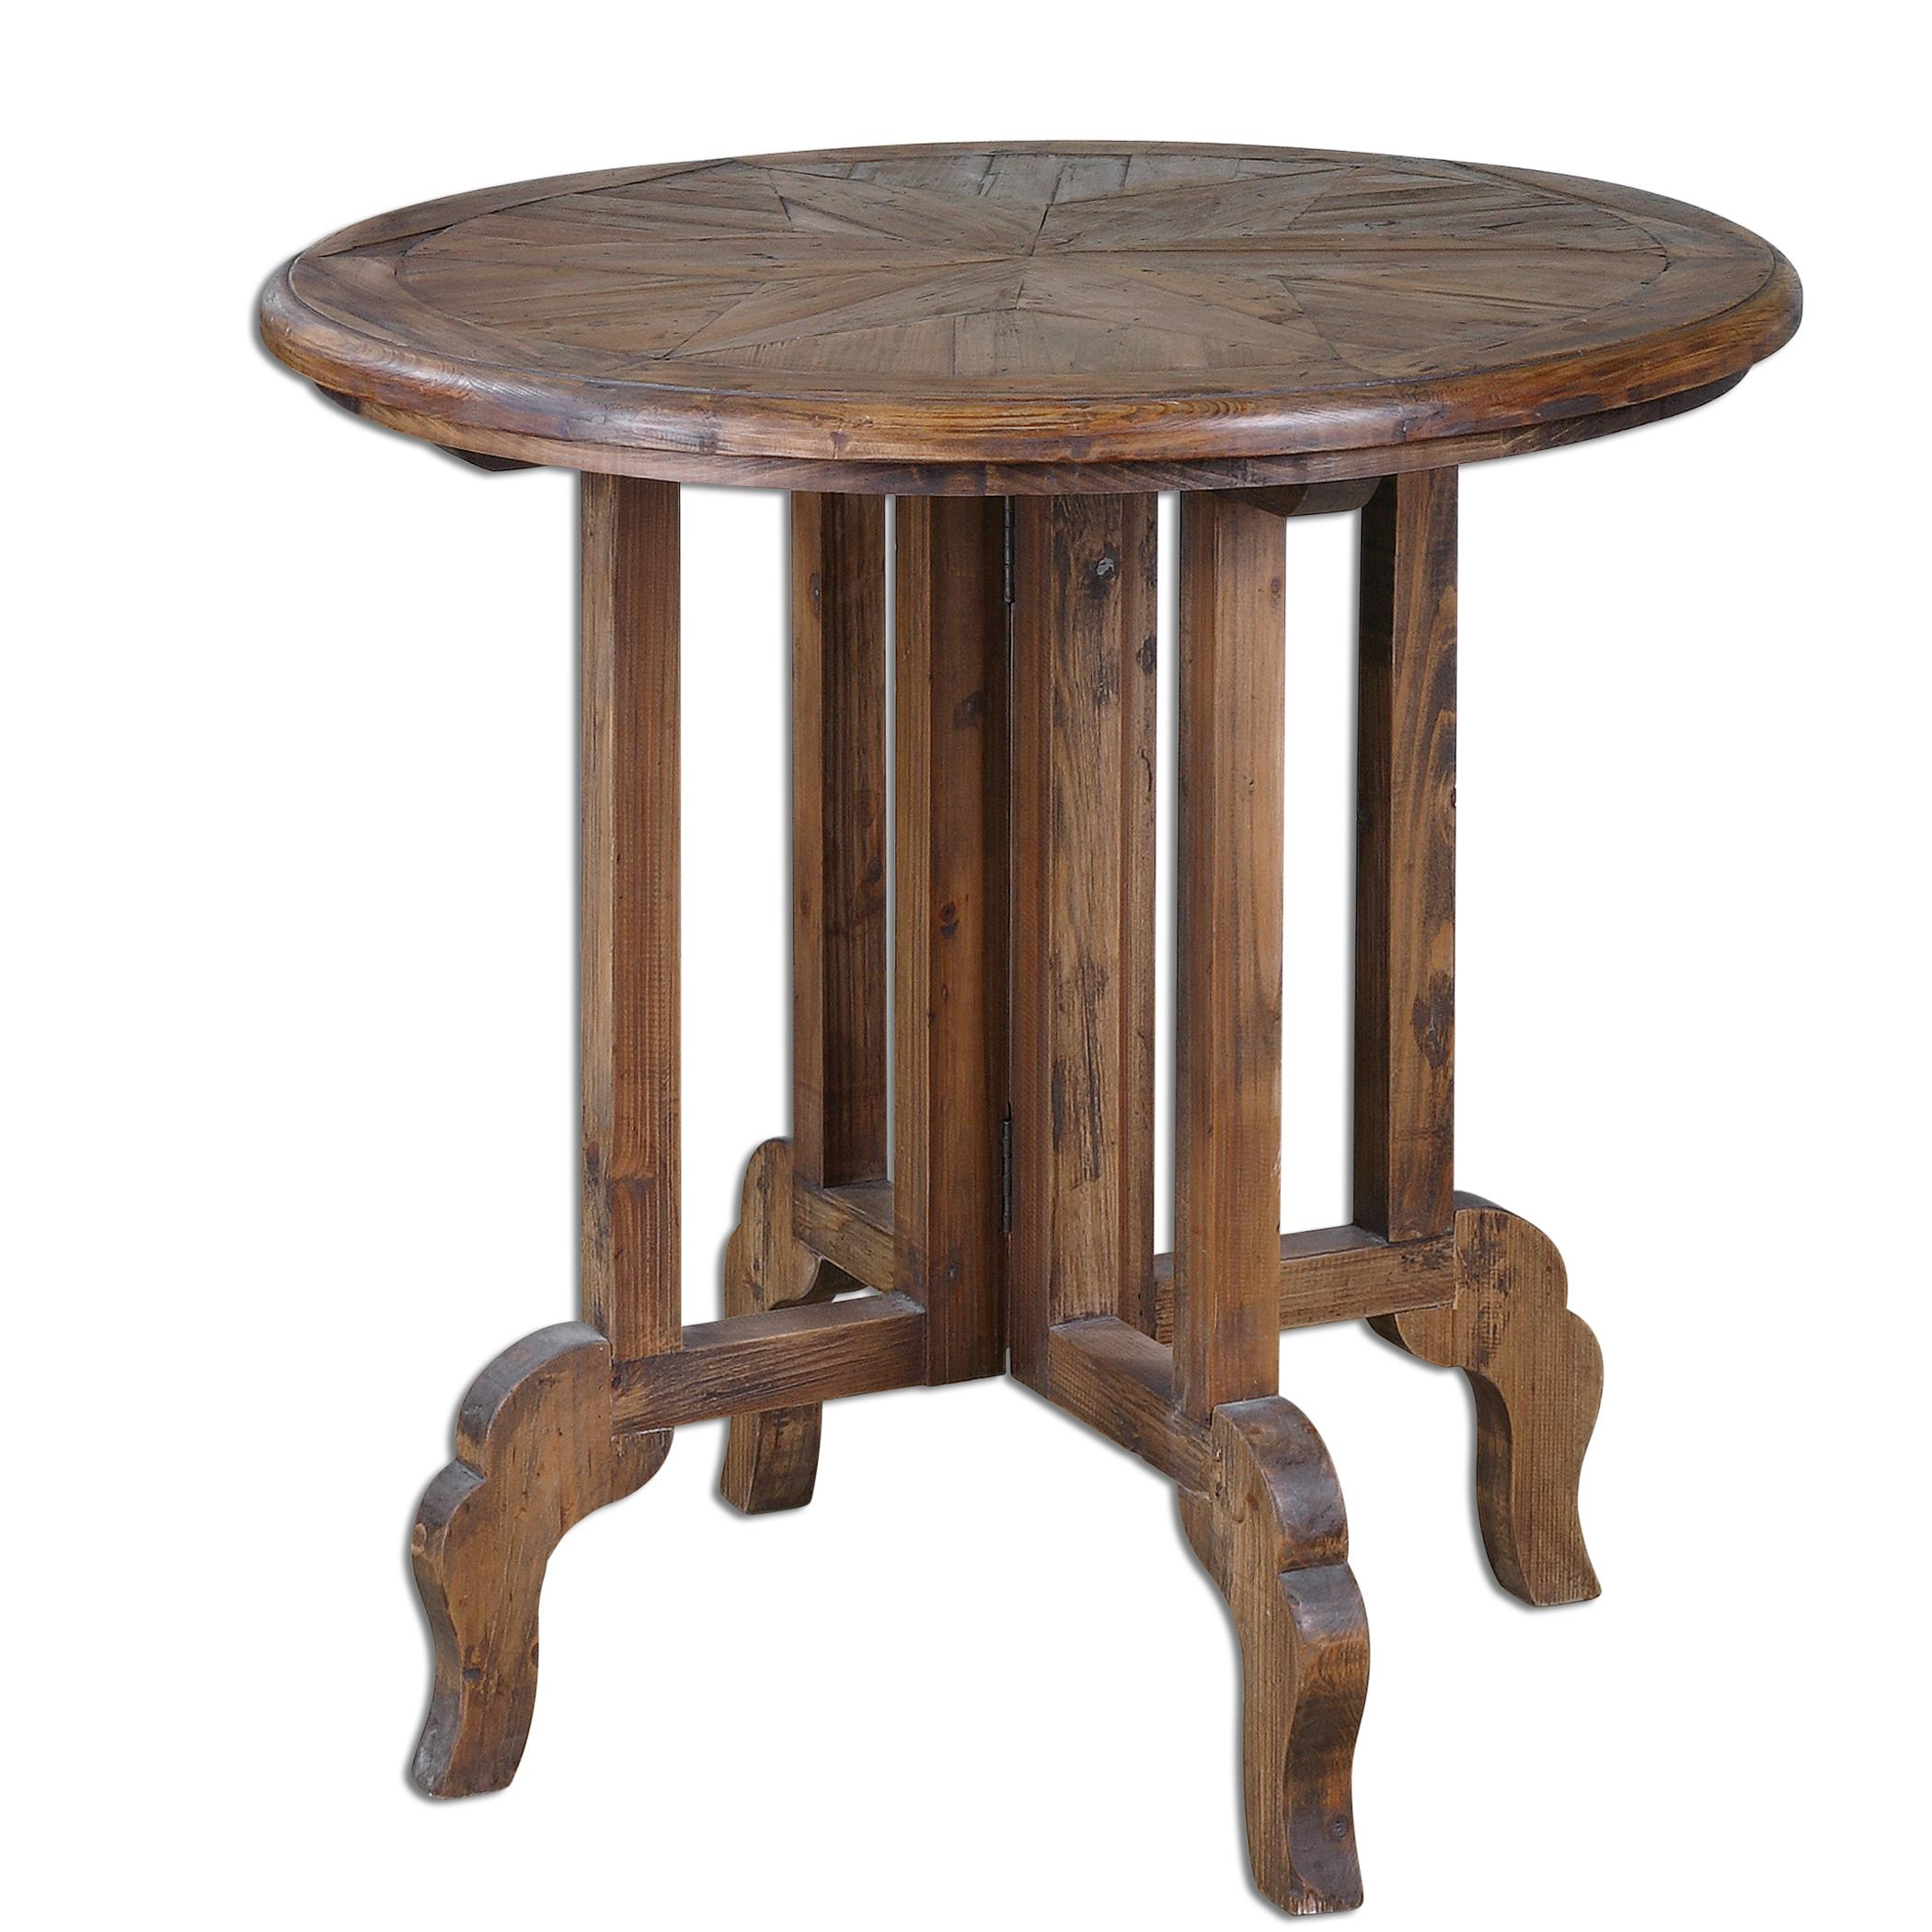 Accent Furniture - Occasional Tables Imber Round Accent Table by Uttermost at O'Dunk & O'Bright Furniture